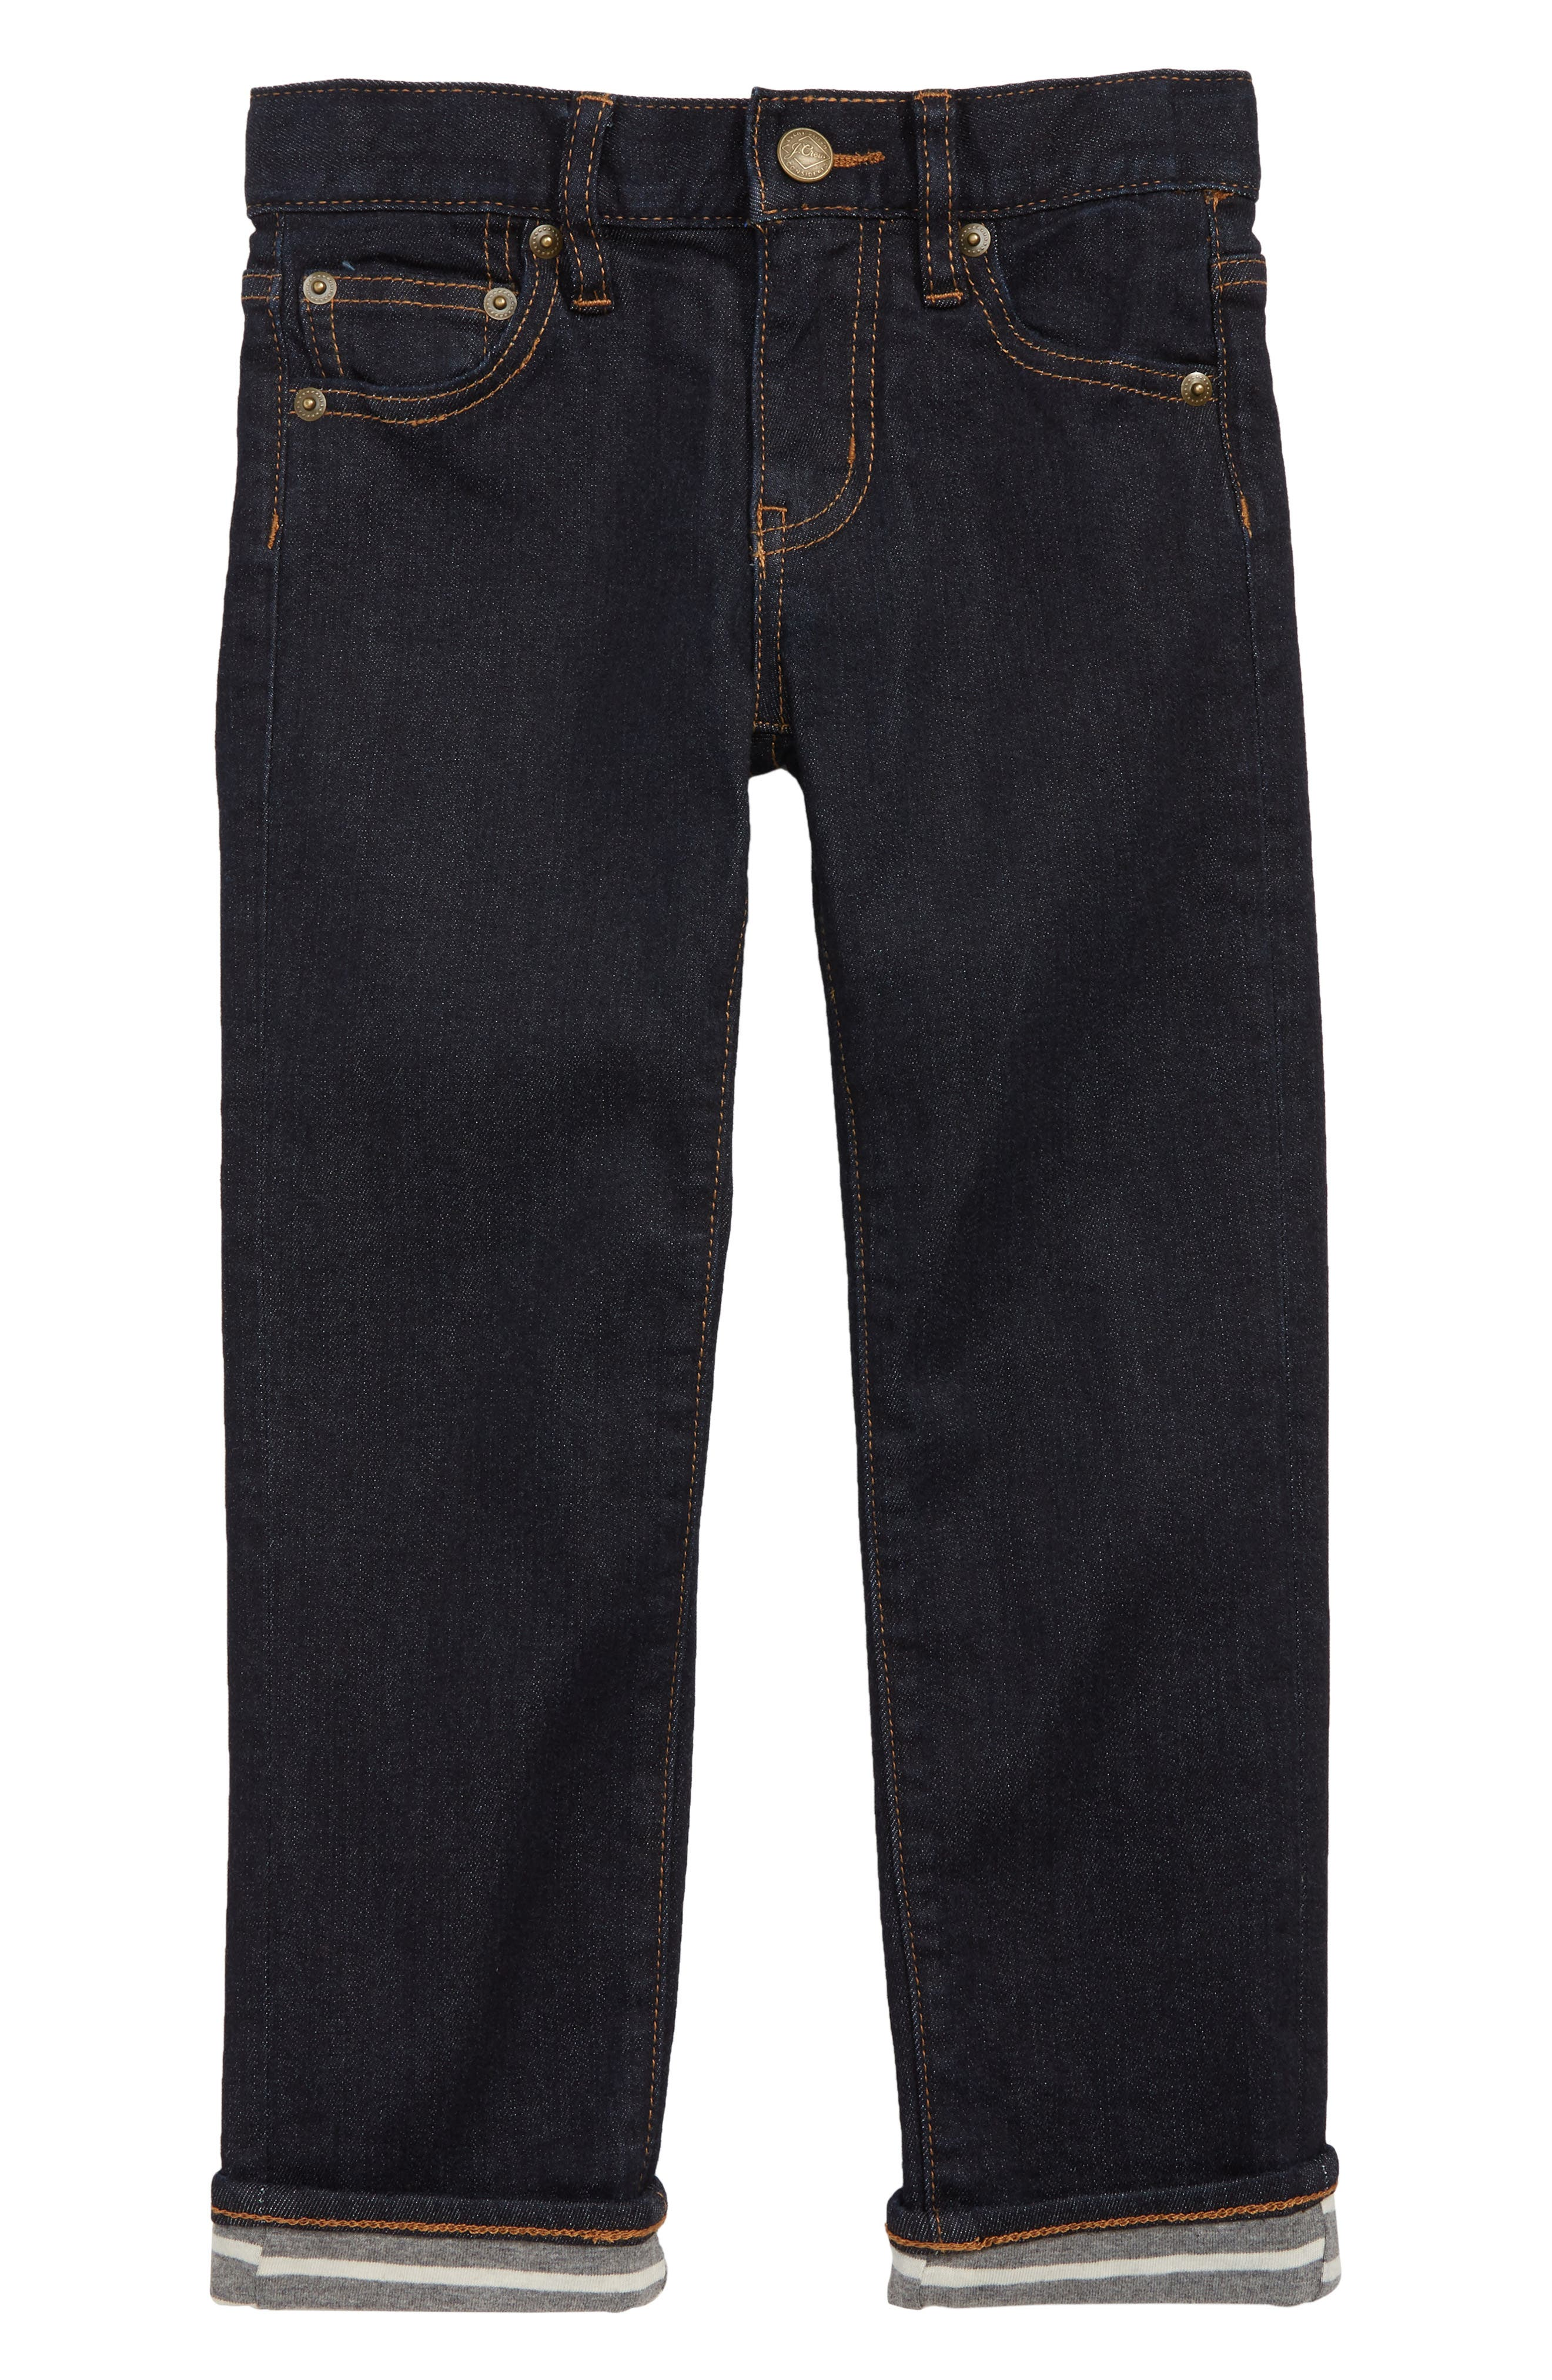 Runaround Slim Fit Lined Jeans,                         Main,                         color, SKINNY RINSE